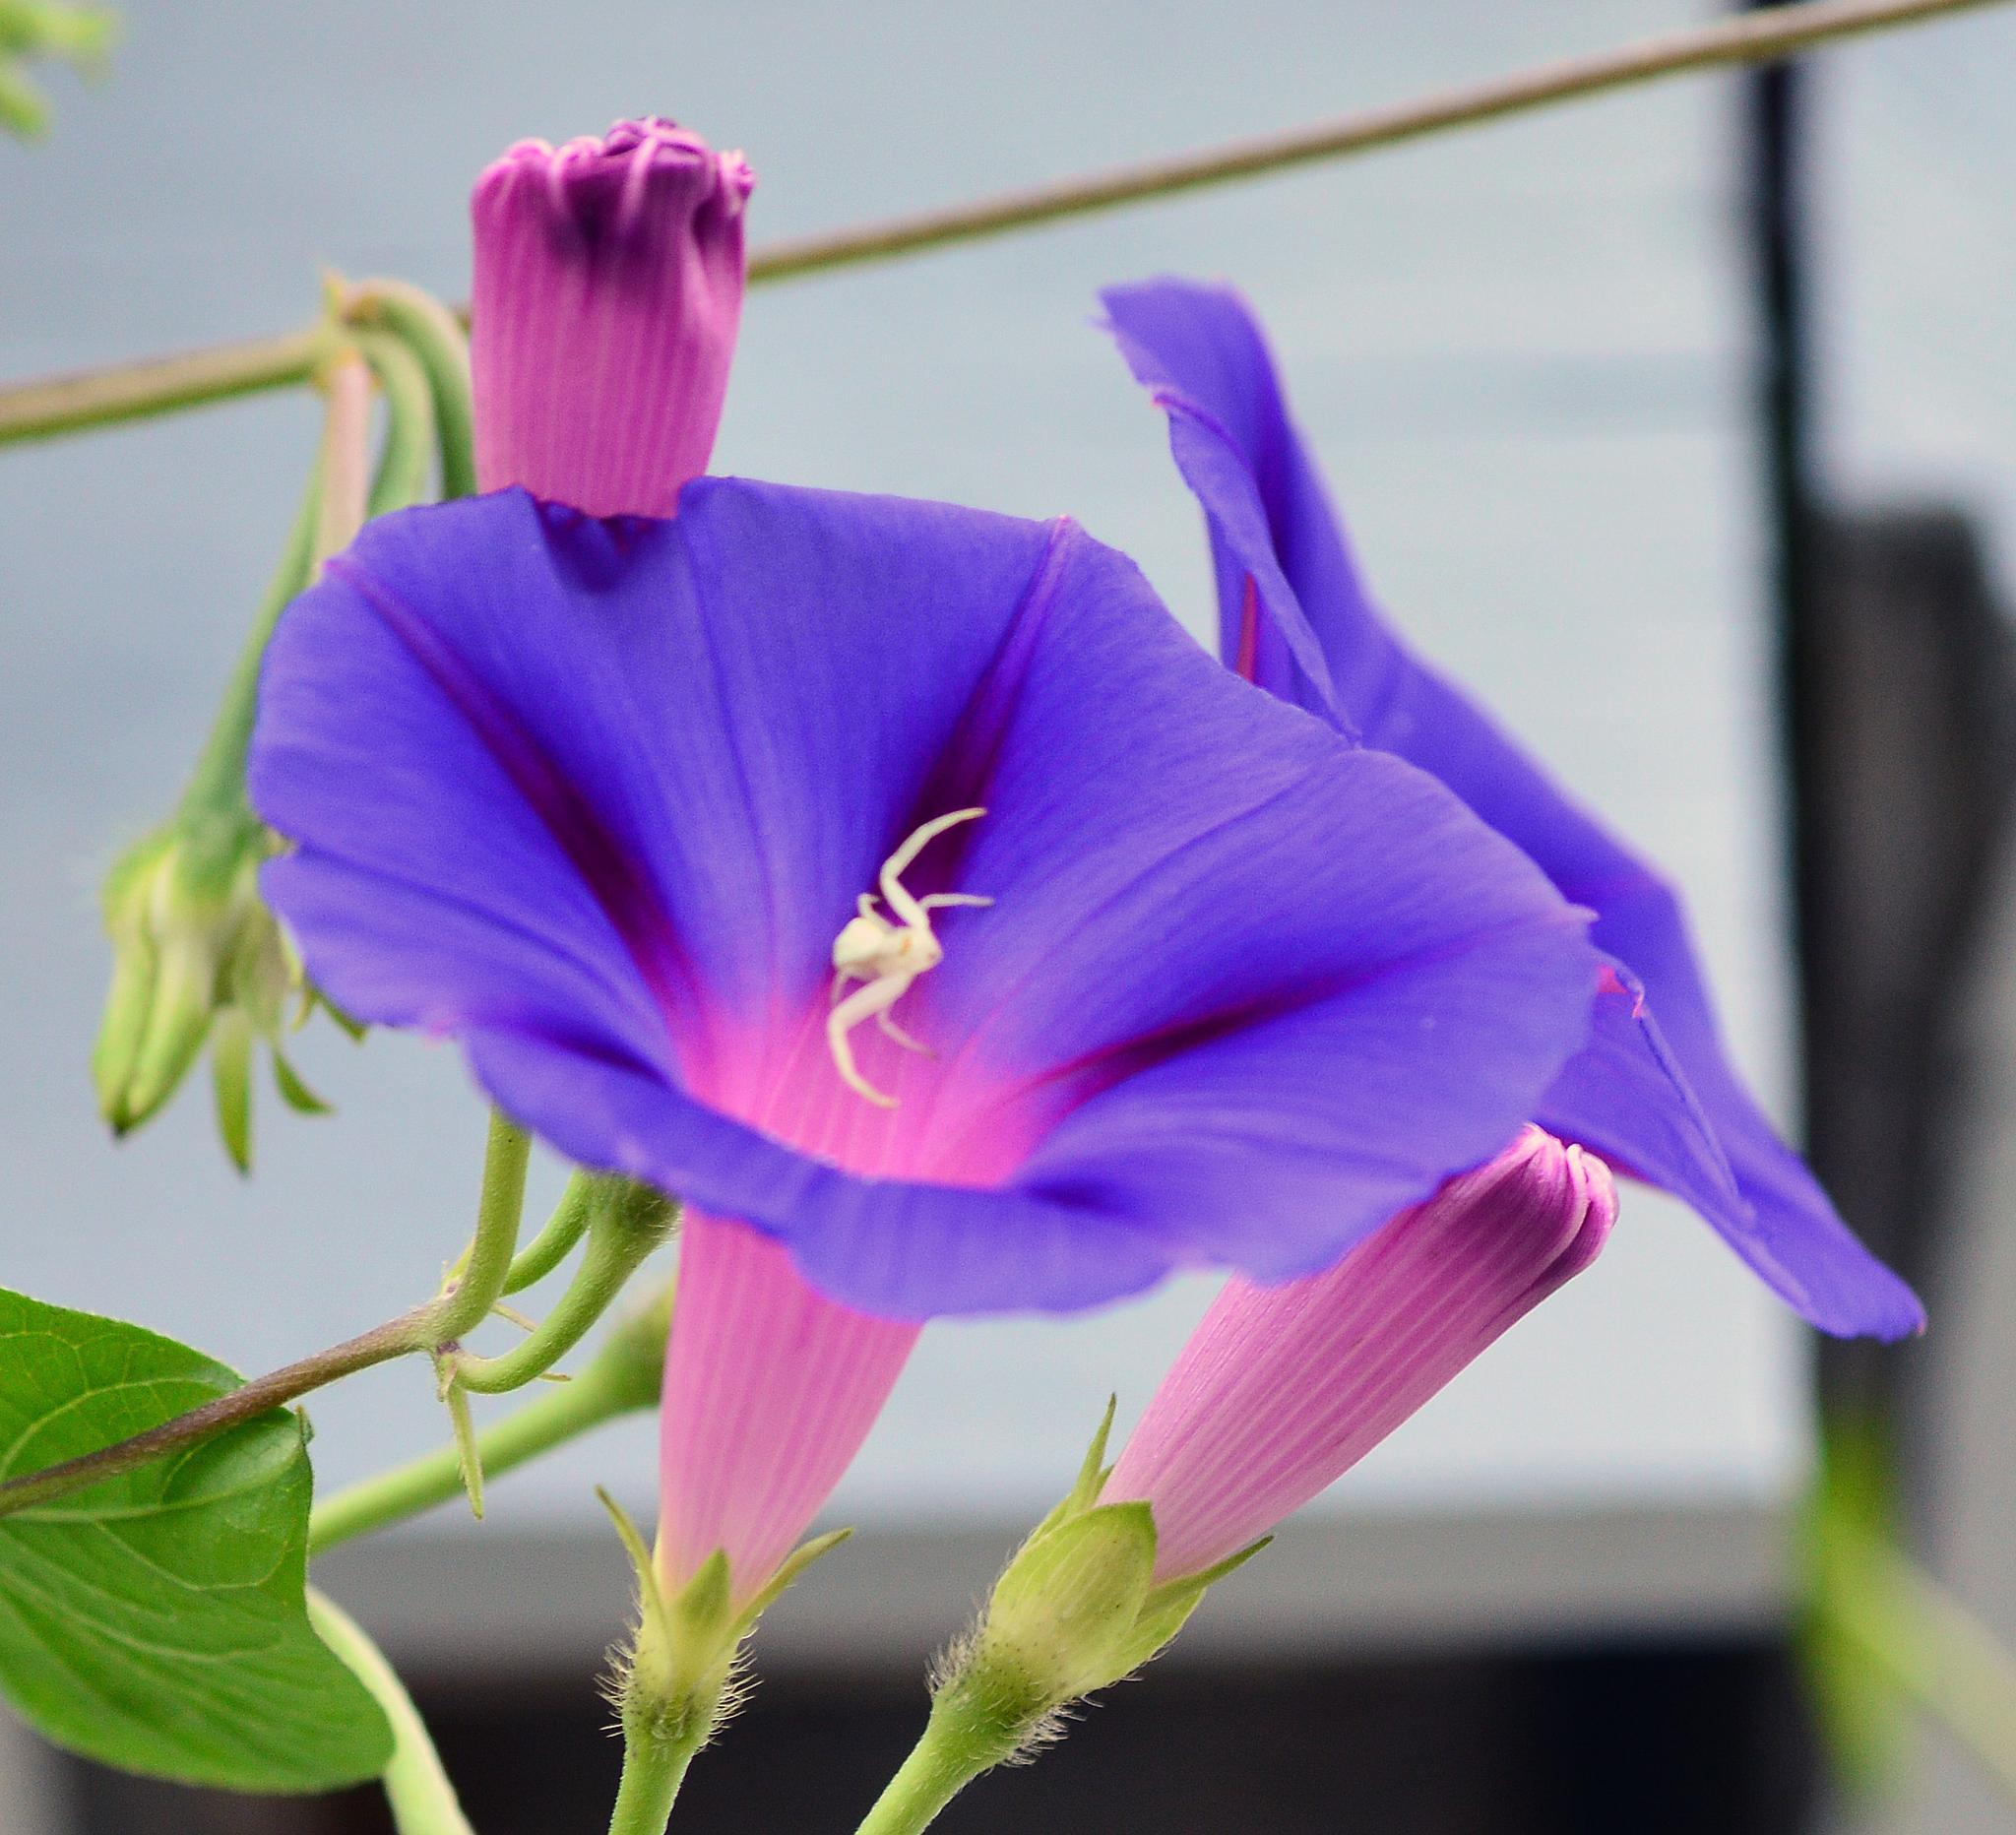 Visitor to the Morning Glory by Sharon Ings-Streeting